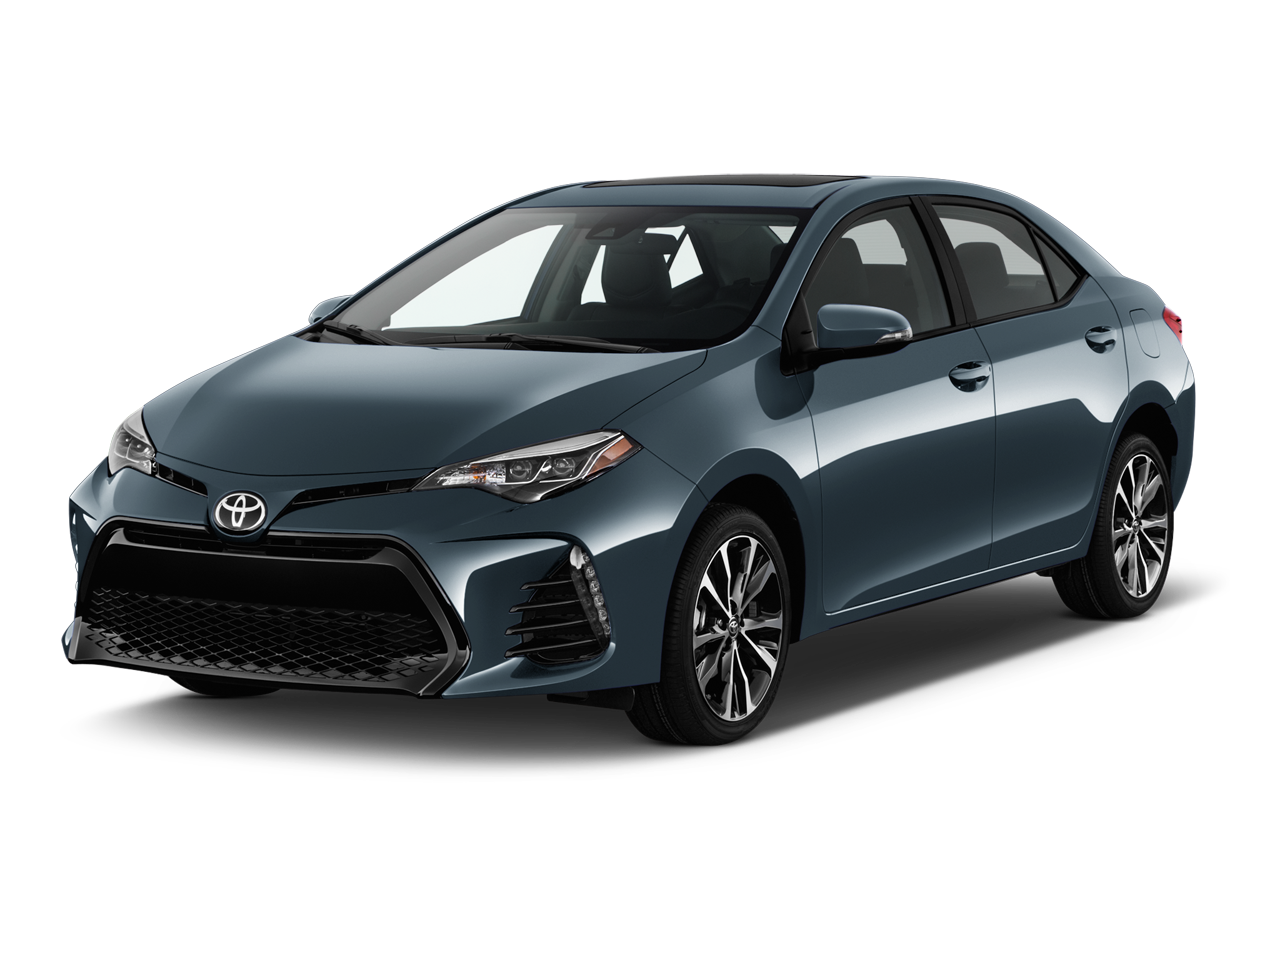 new 2017 toyota corolla xse near carroll ia motor inn toyota of carroll. Black Bedroom Furniture Sets. Home Design Ideas